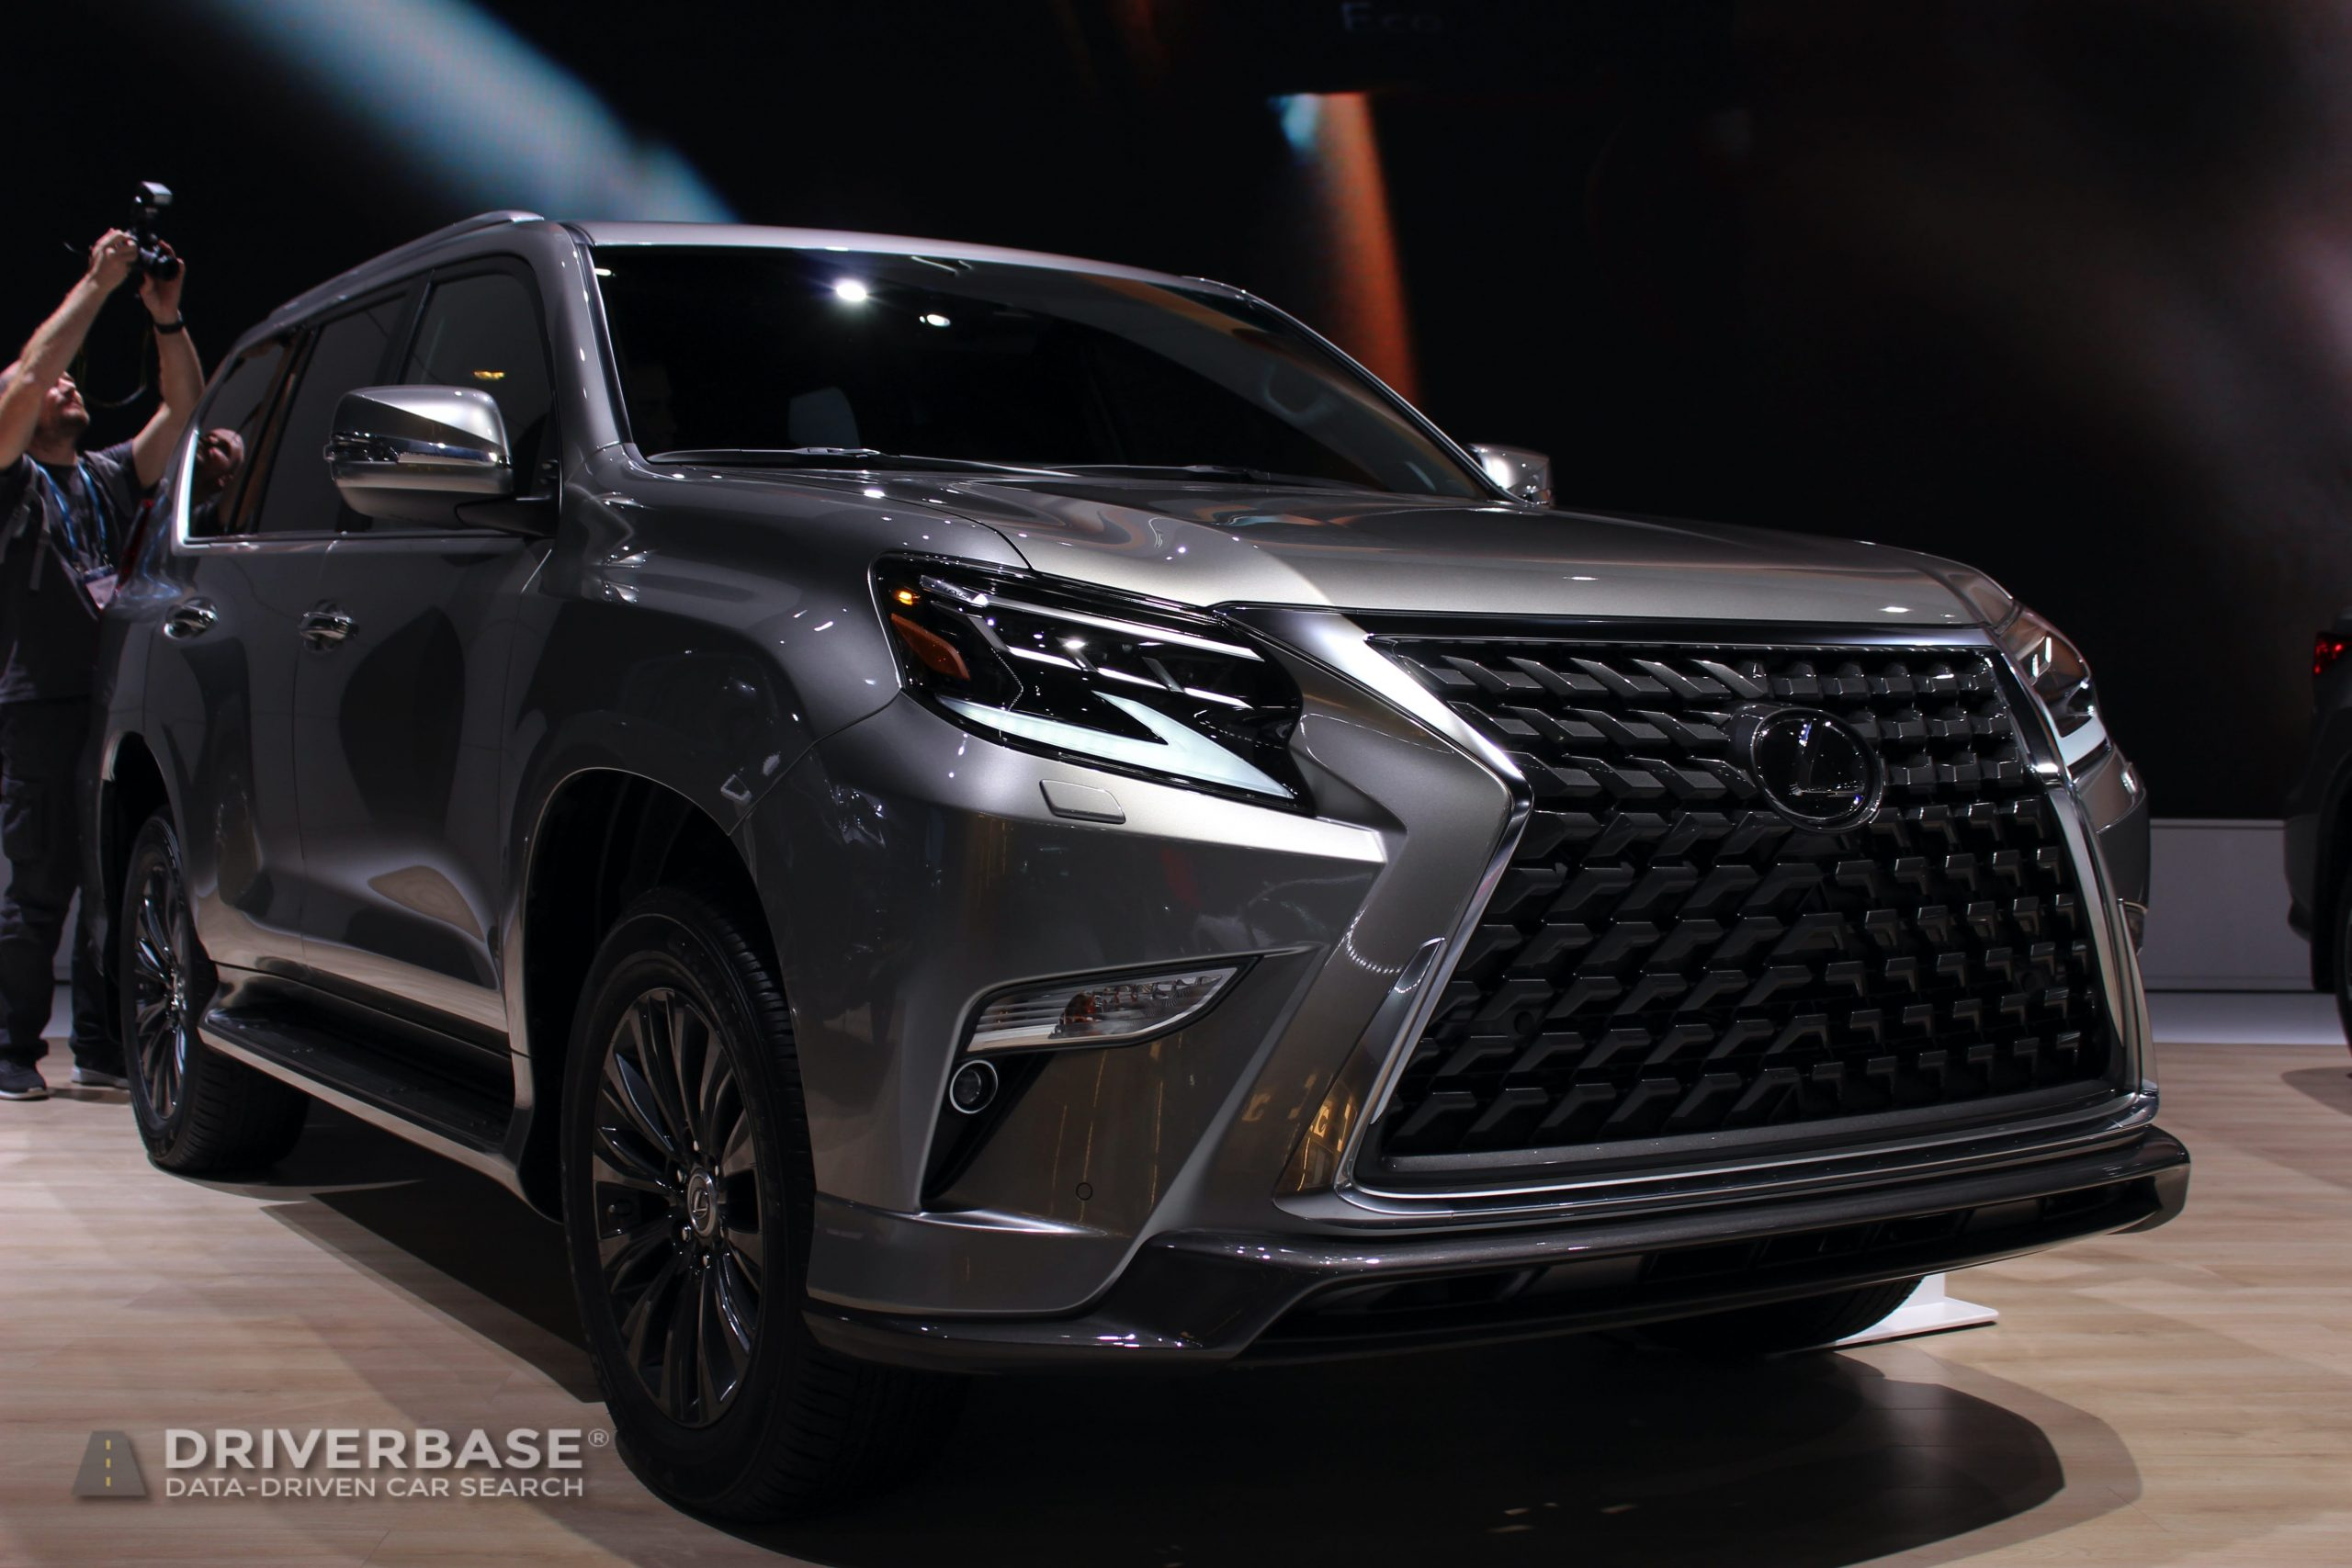 2020 Lexus GX 460 at the 2019 Los Angeles Auto Show